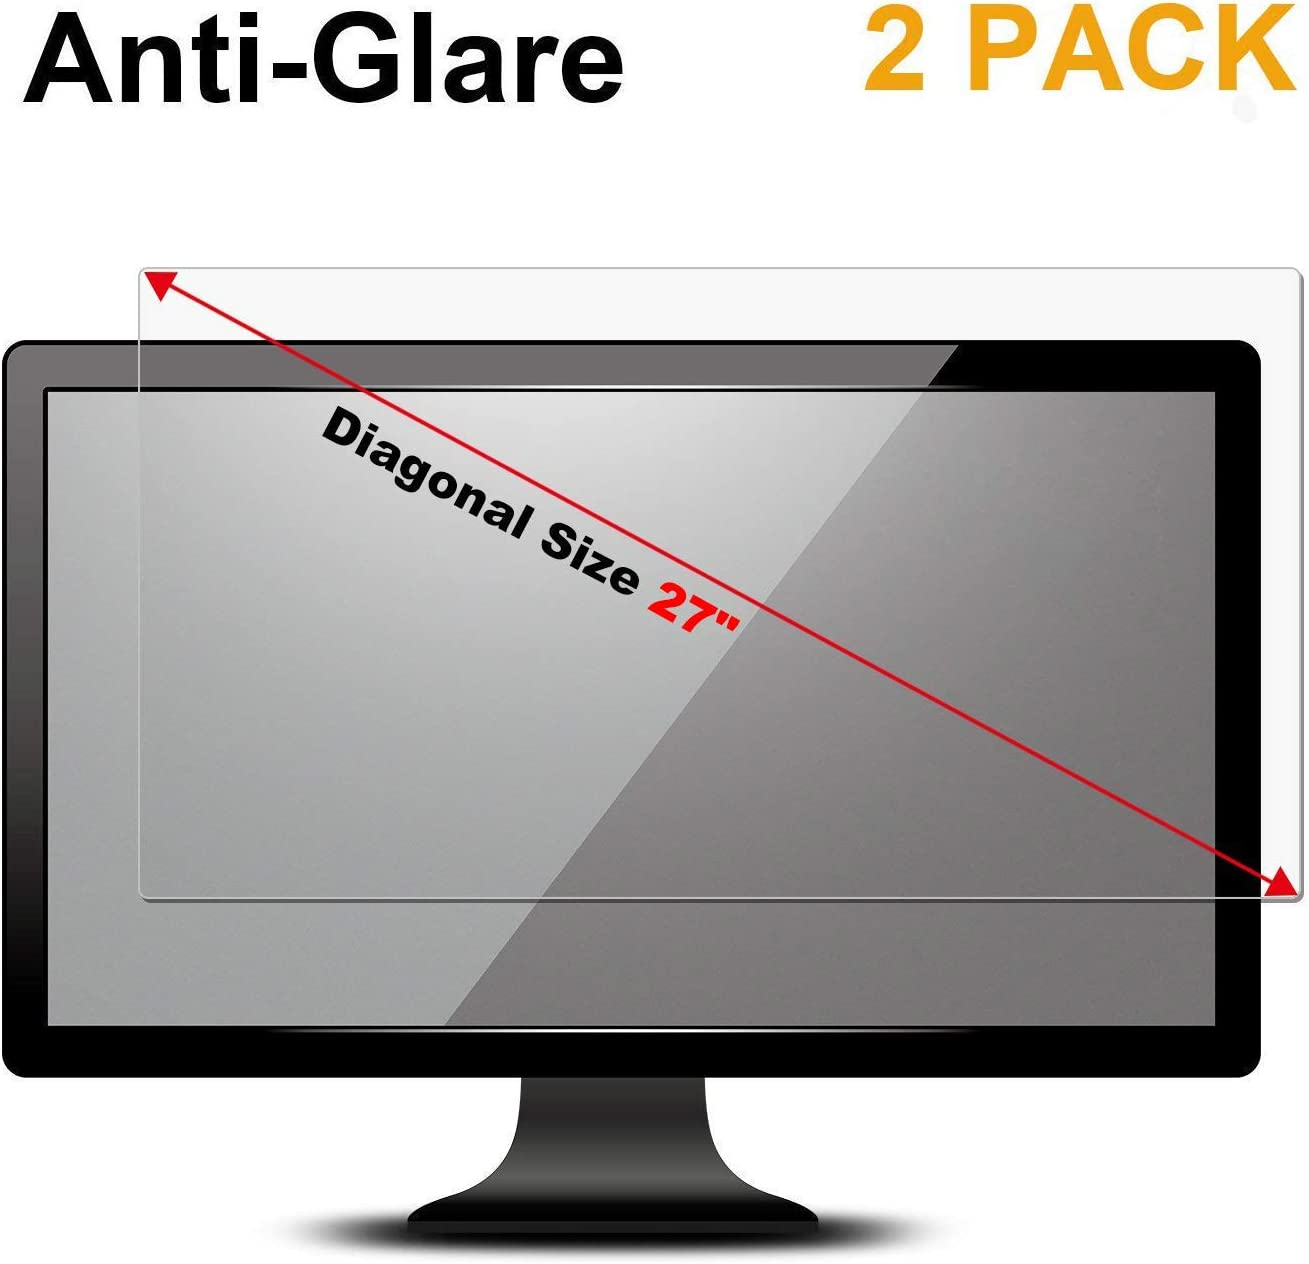 "FORITO 2 Pack 27 inch Anti Glare(Matte) Screen Protector Compatible with 27"" Widescreen Desktop Monitor with 16:9 Aspect Ratio Dell/Asus/Acer/ViewSonic/amsung/Aoc/HP Monitor(23.5"" W x 13.3"" H)"